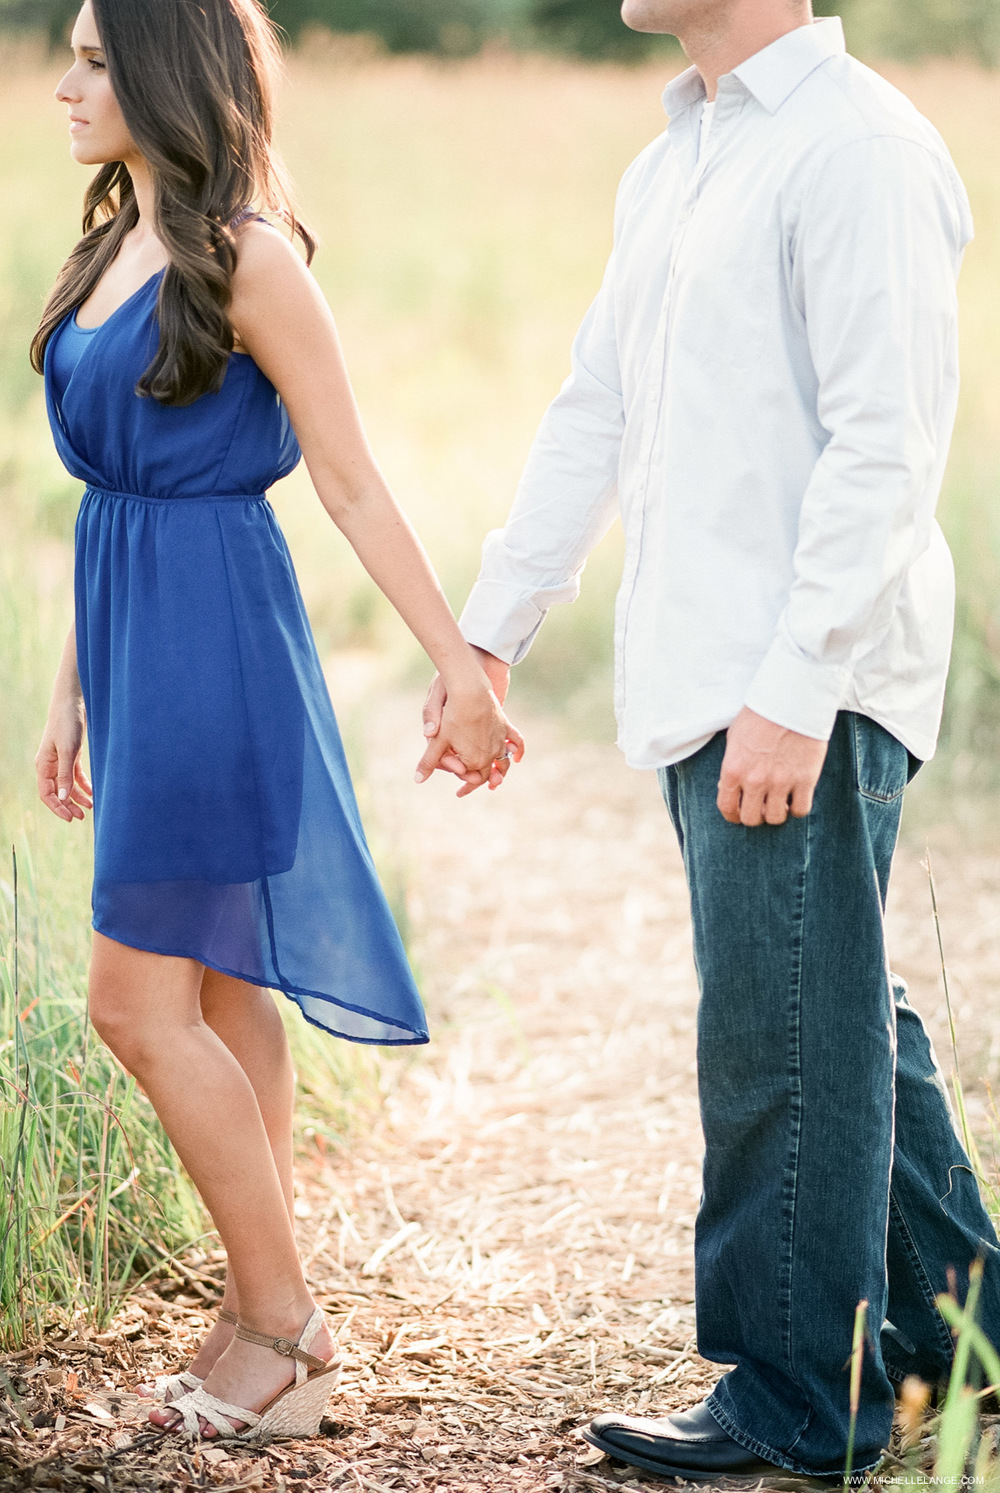 Verona Montclair Caldwell New Jersey Engagement Photographer